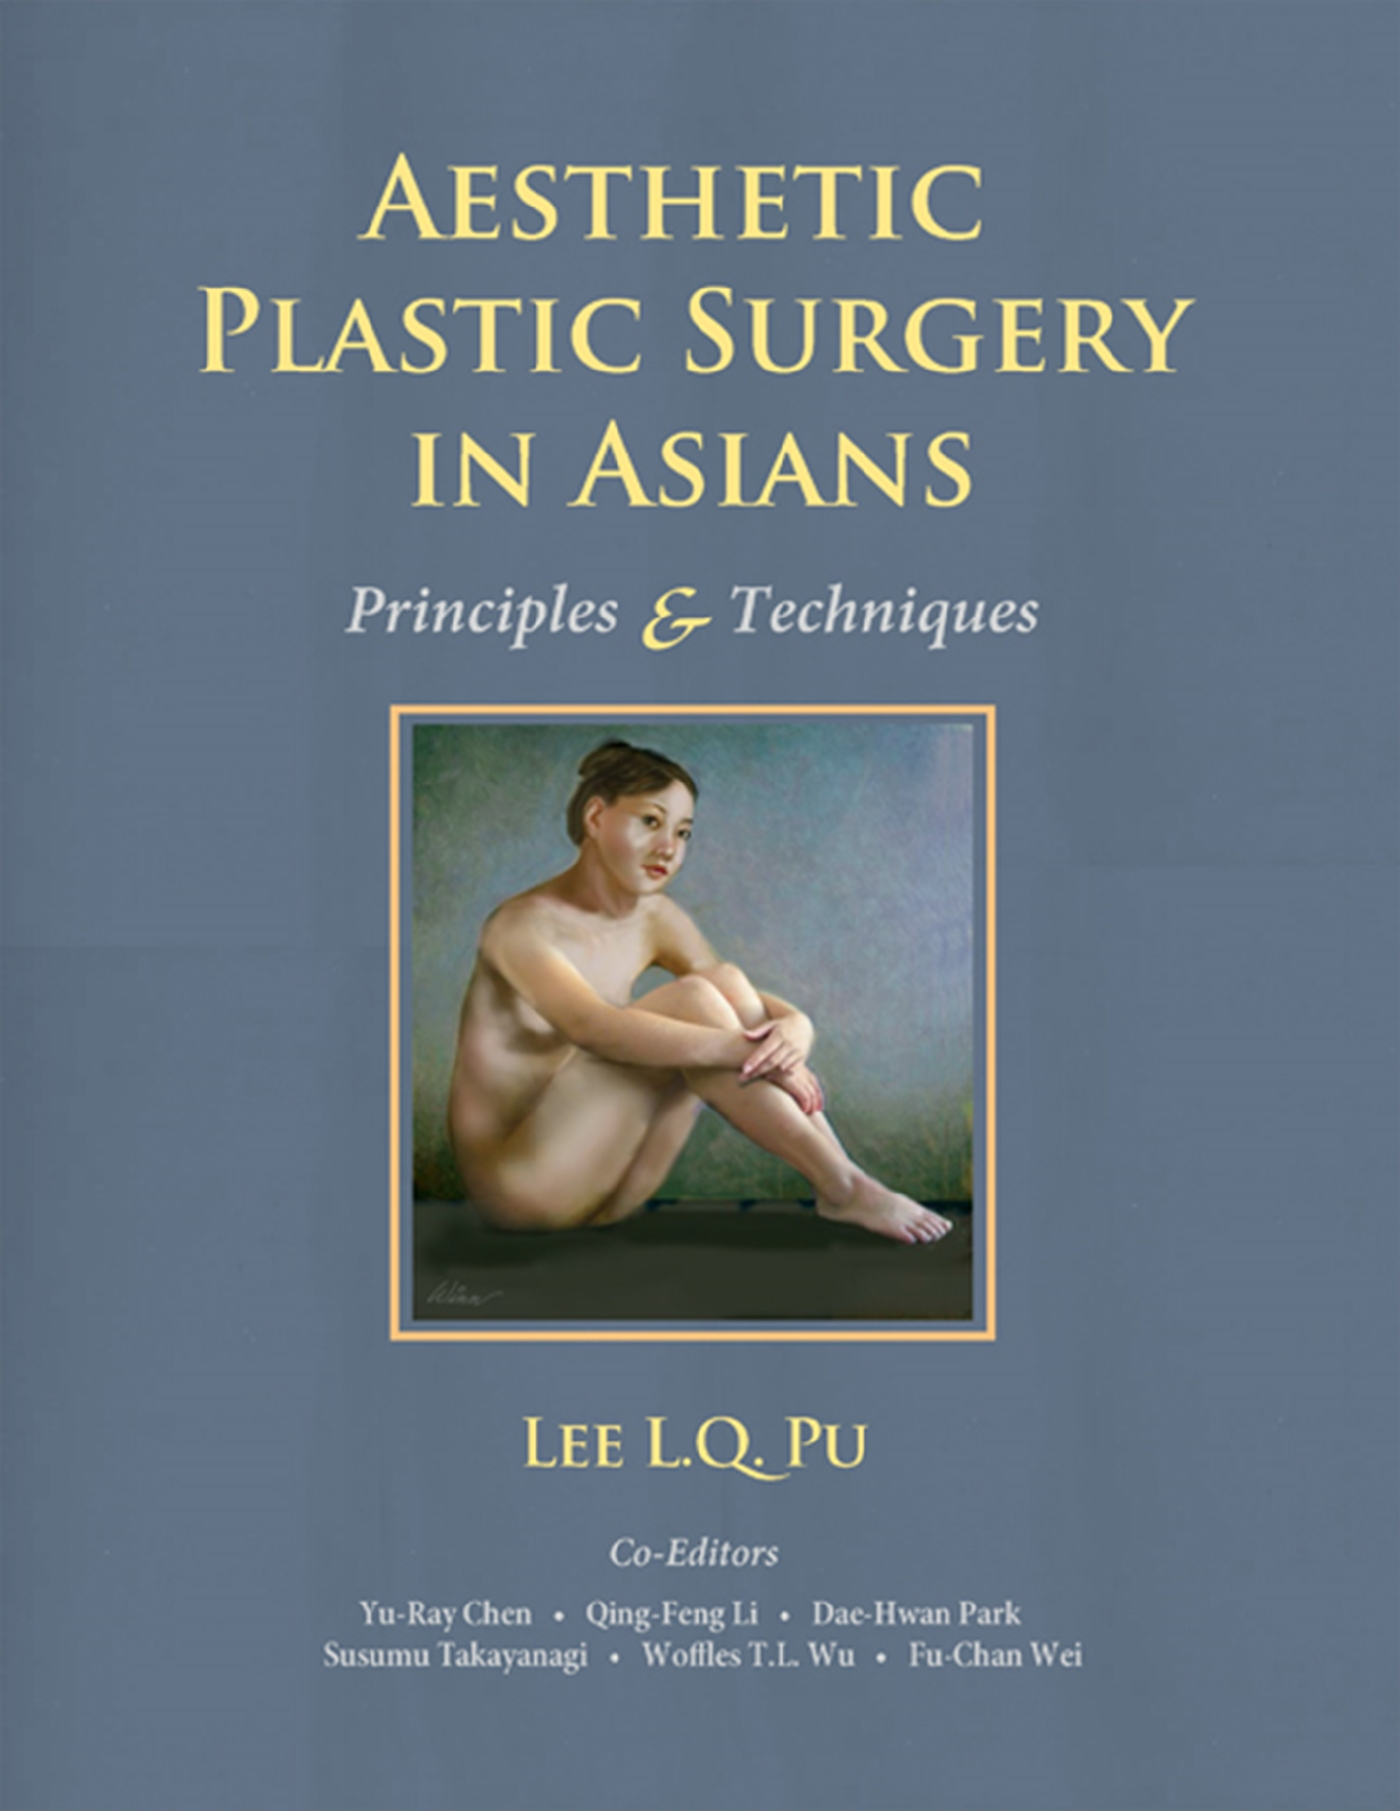 Aesthetic Plastic Surgery in Asians